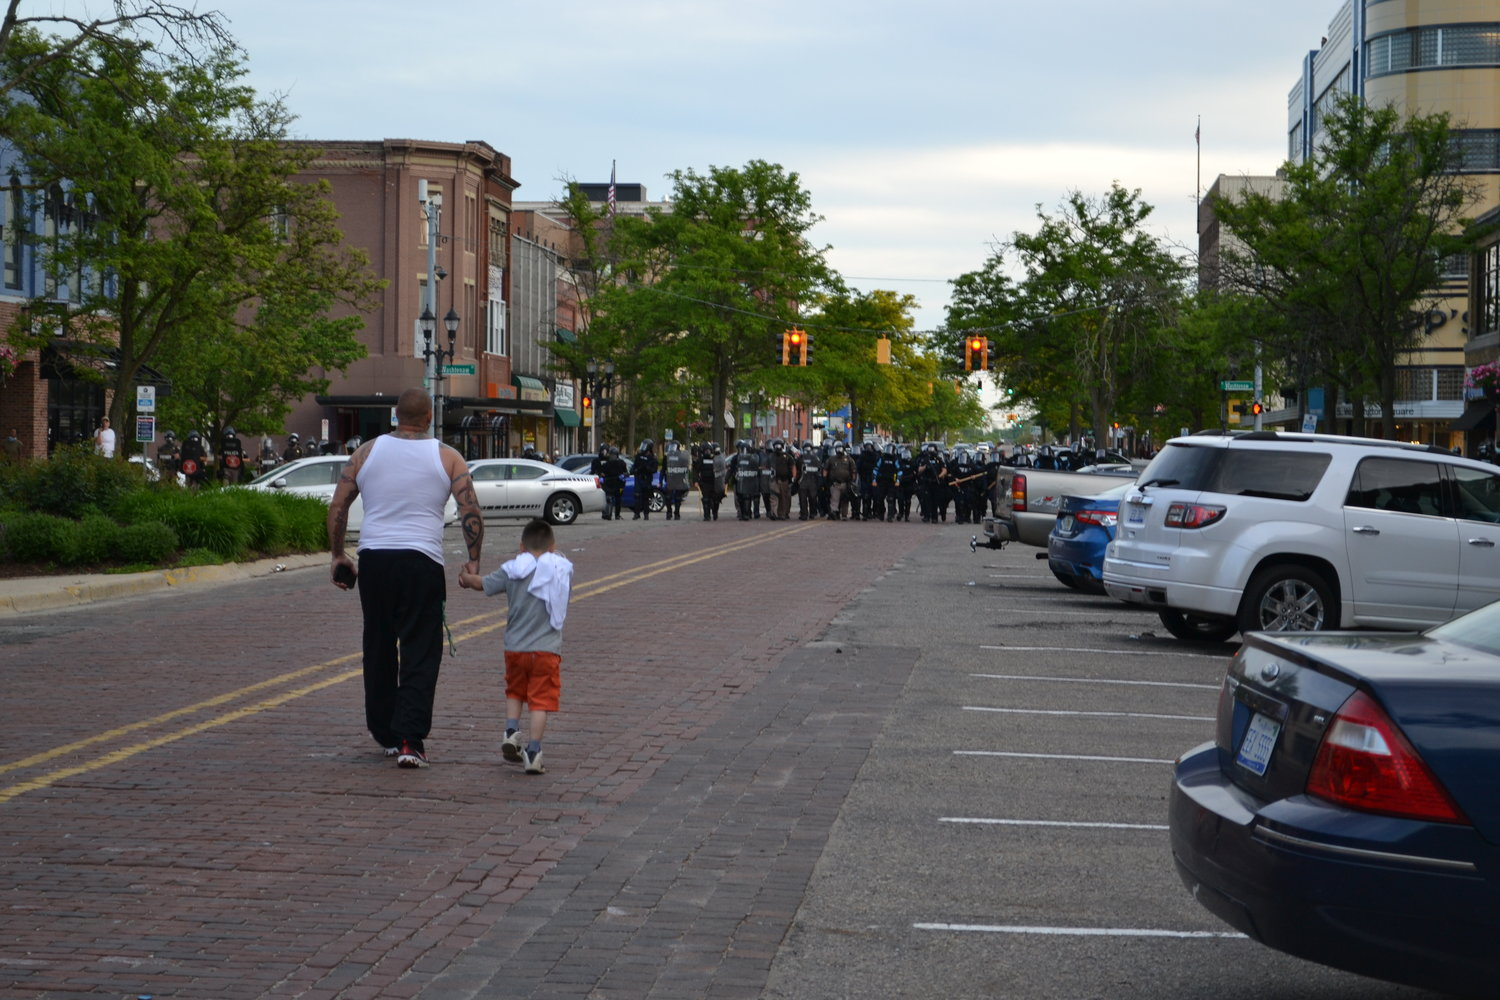 A man approaches a lineup of police with his son.